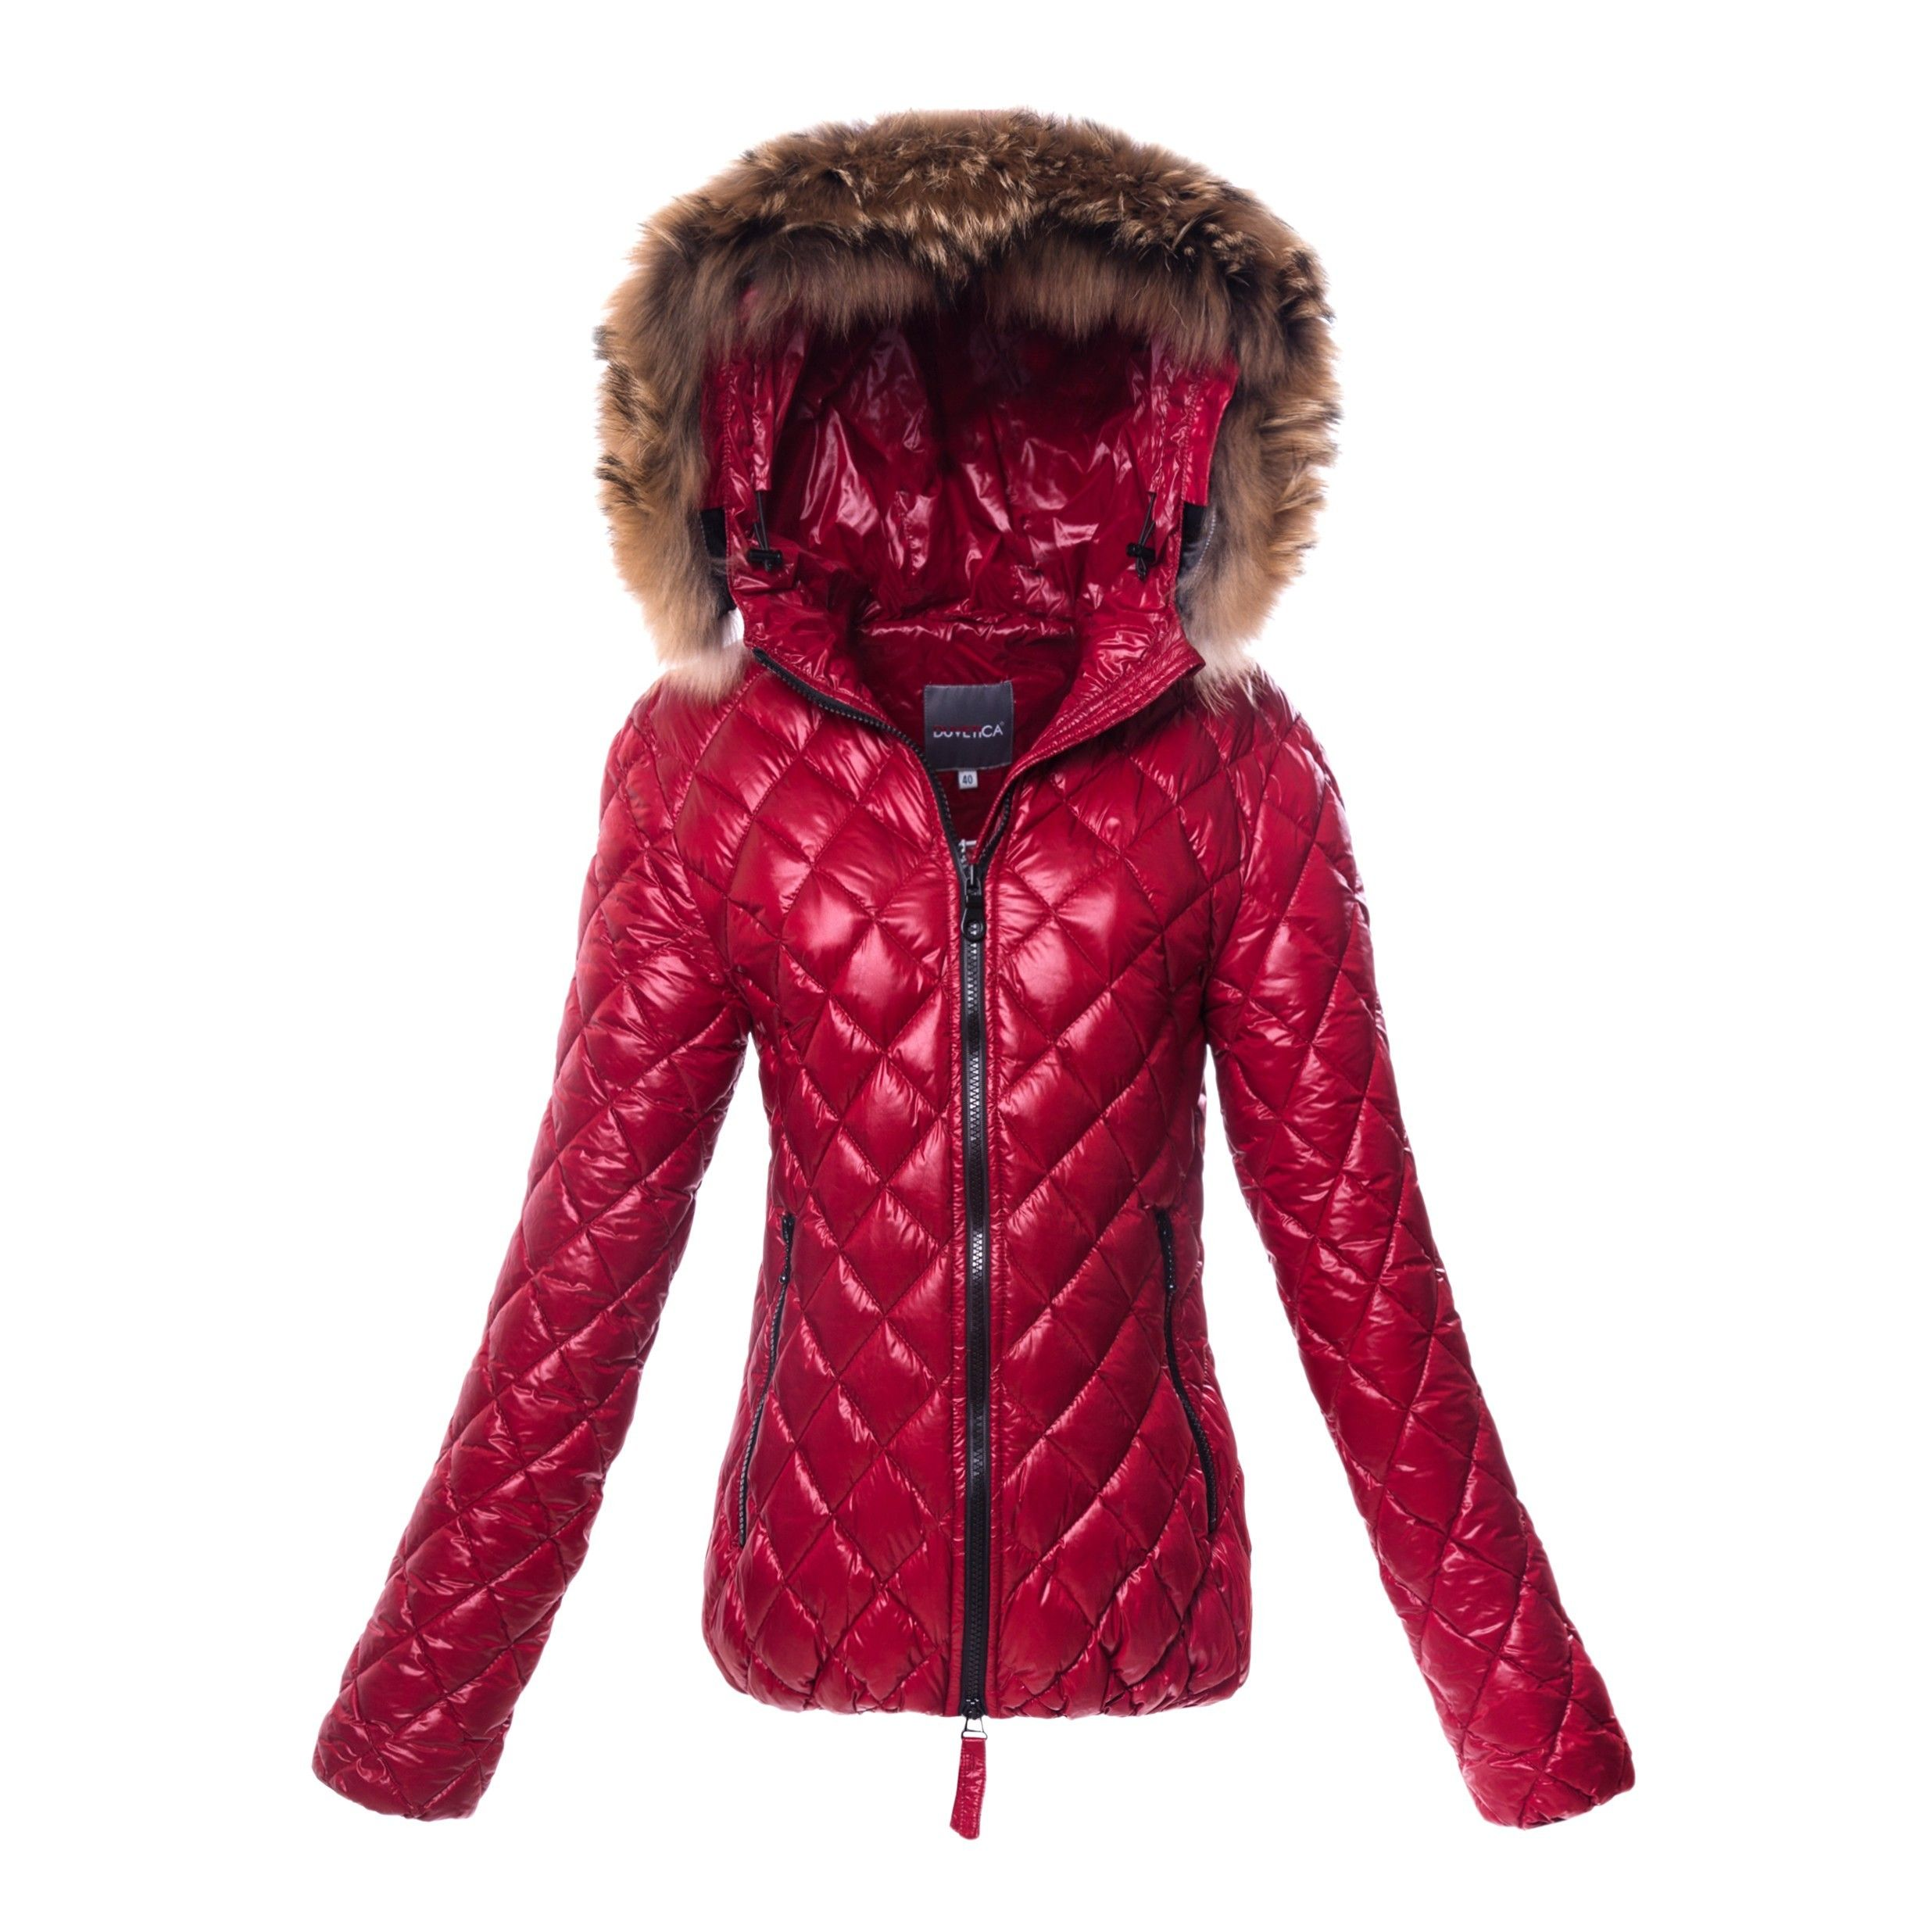 Get your DUVETICA Hooded Down Jackets Aida Short Shiny Nylon Womens Outlet from duvetica outlet shop online as Christmas gifts.